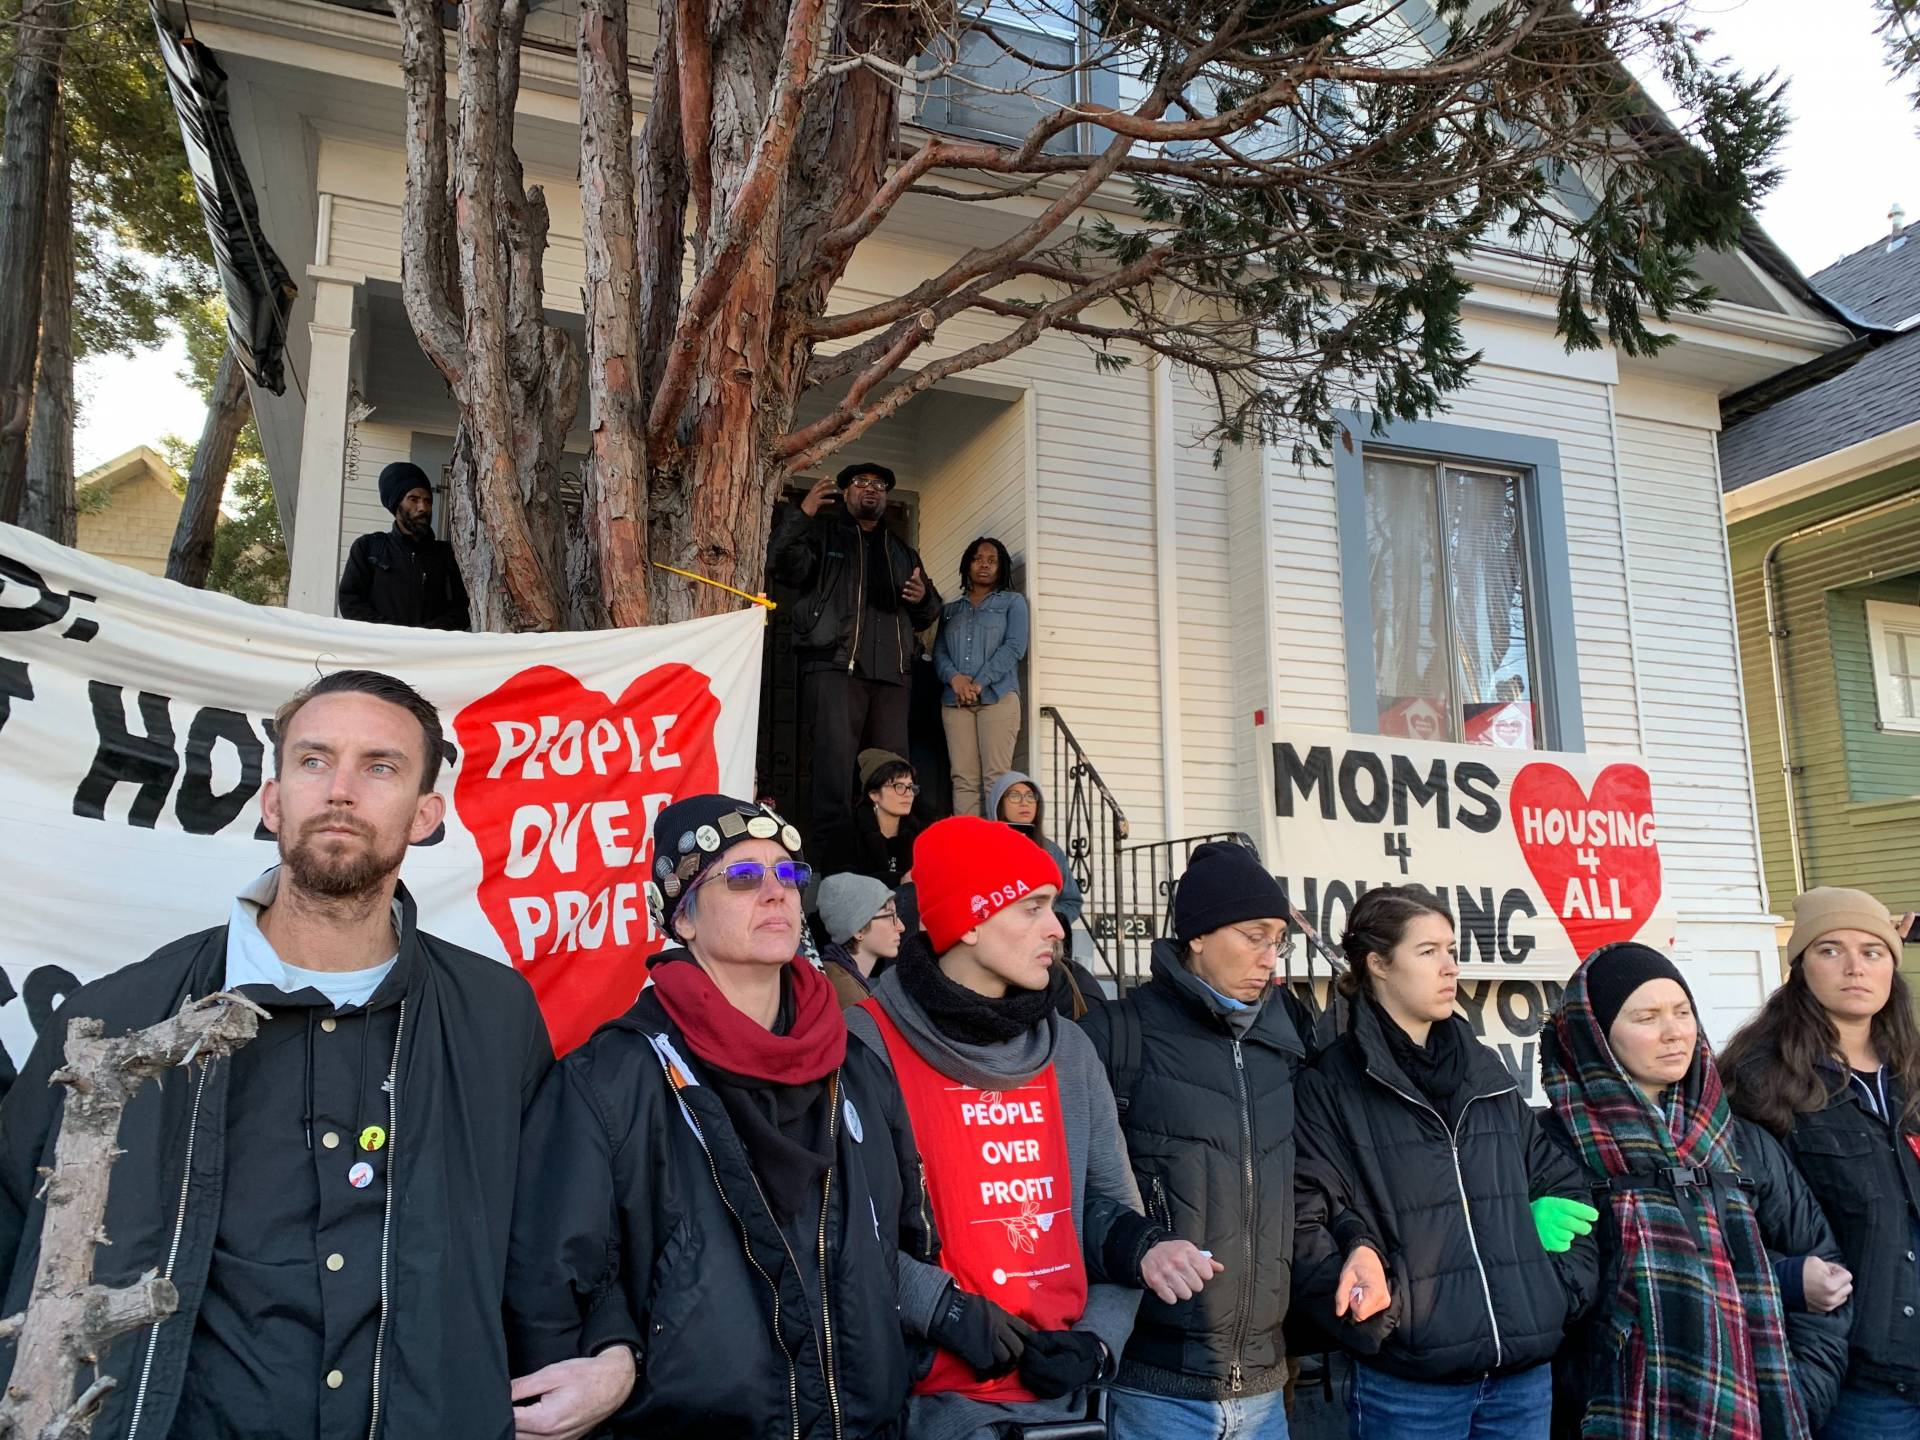 Supporters of Moms 4 Housing rally in front of the West Oakland house the group occupied for several months before being forcefully evicted in January. A community land trust has since agreed to purchase the house and allow the women move back in.